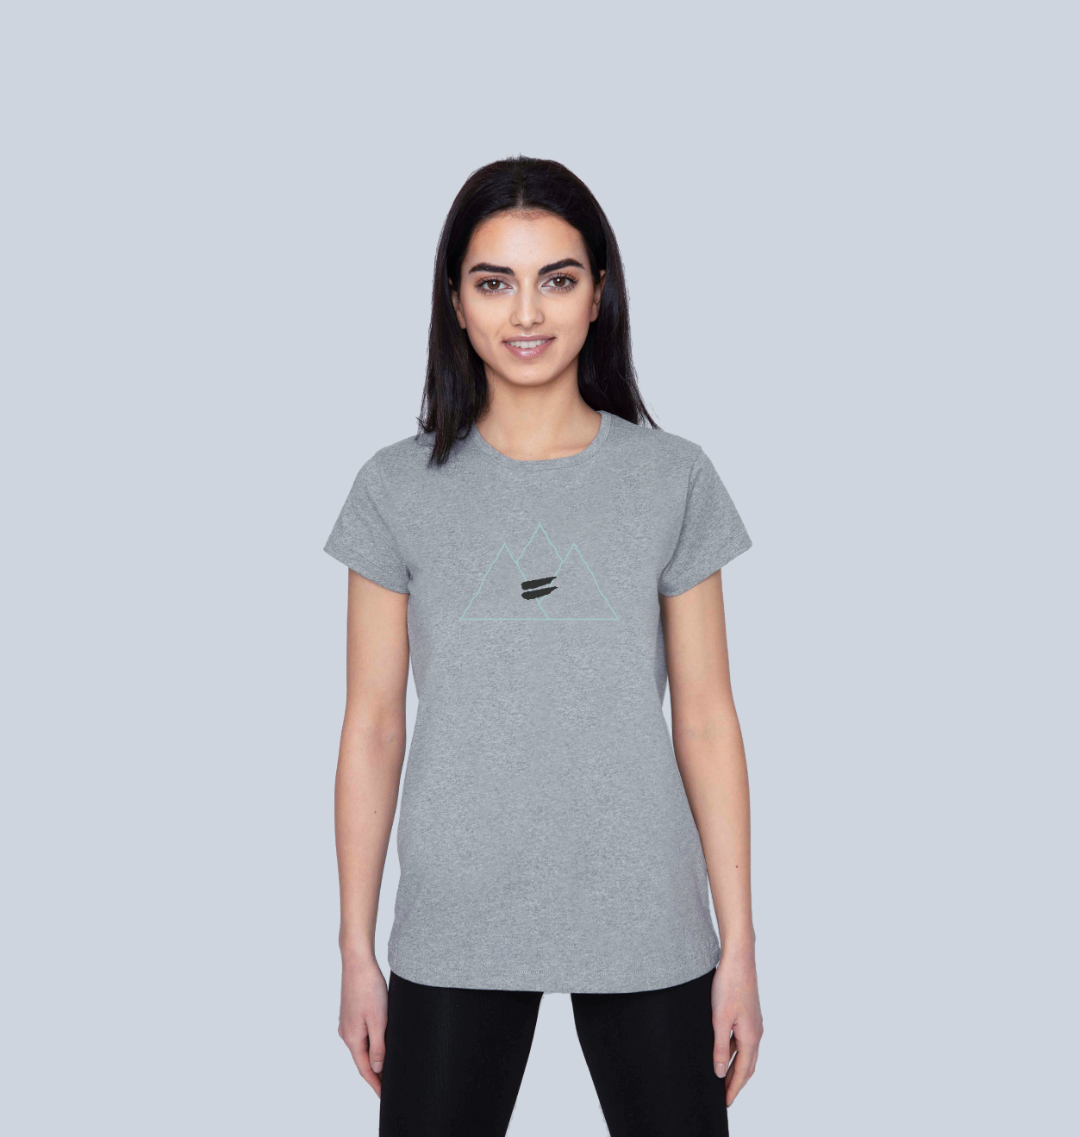 Summit Tee in Sky - Women's